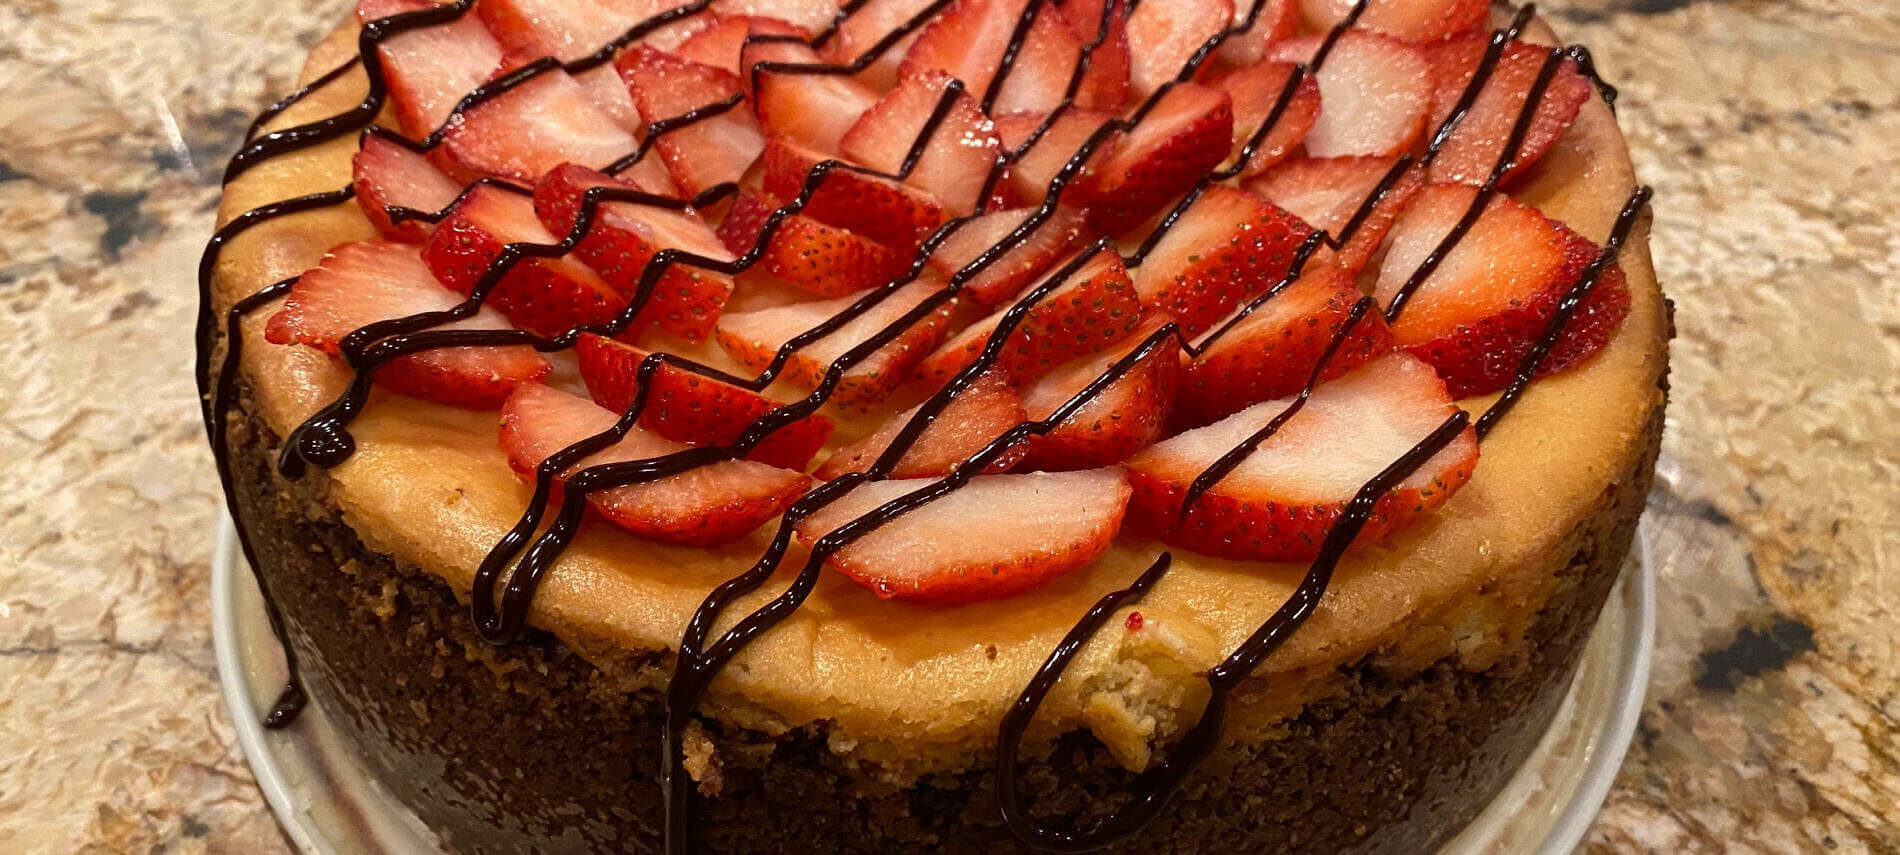 Creamy Champagne Cheesecake topped with red strawberry slices and drizzled with chocolate on a chocolate cookie crumb crust